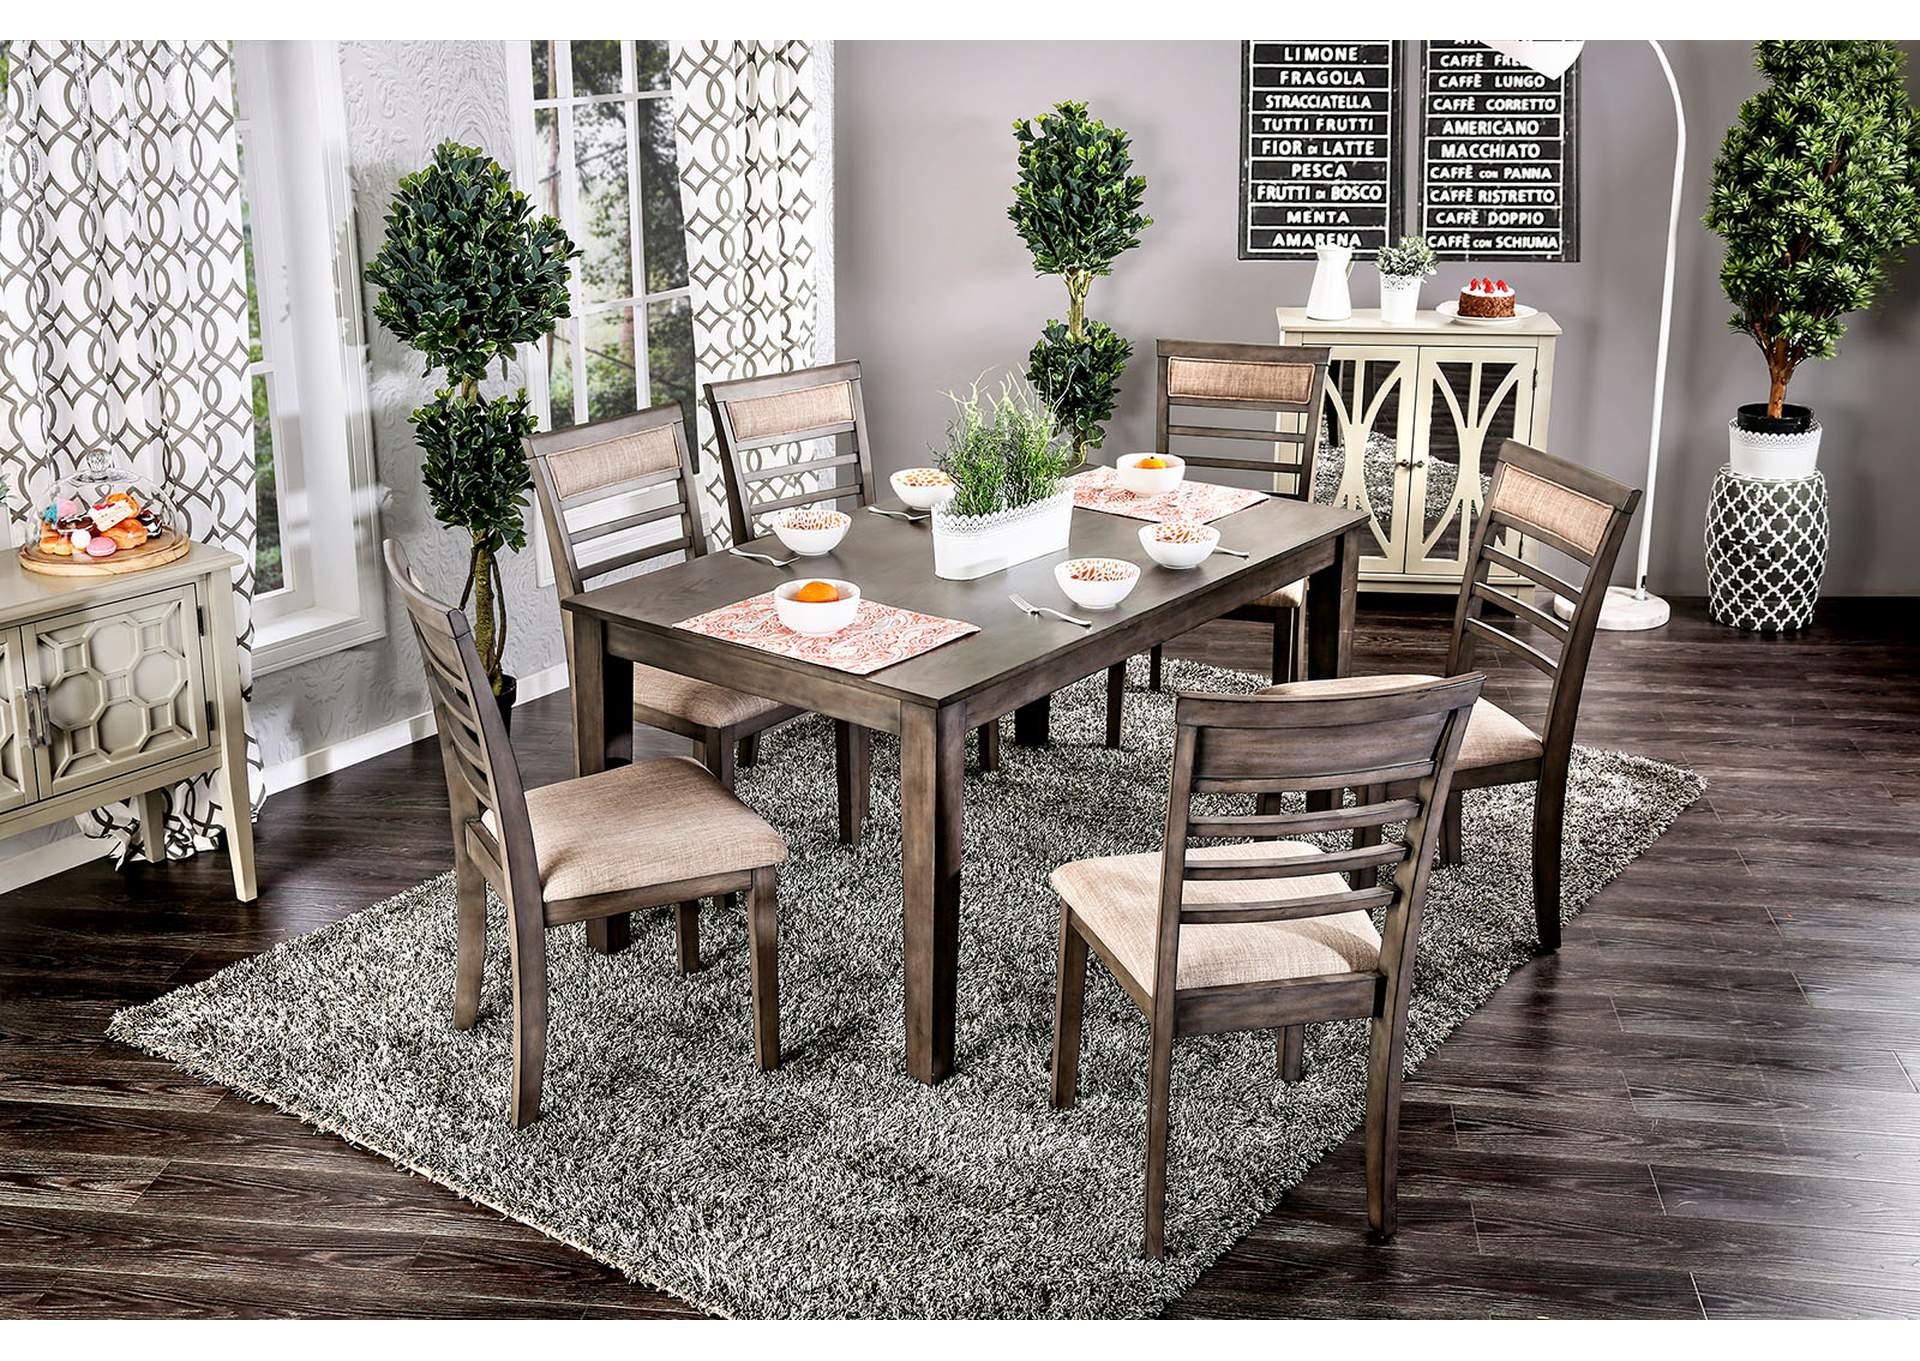 Taylah weathered gray 7 piece dining table setfurniture of america